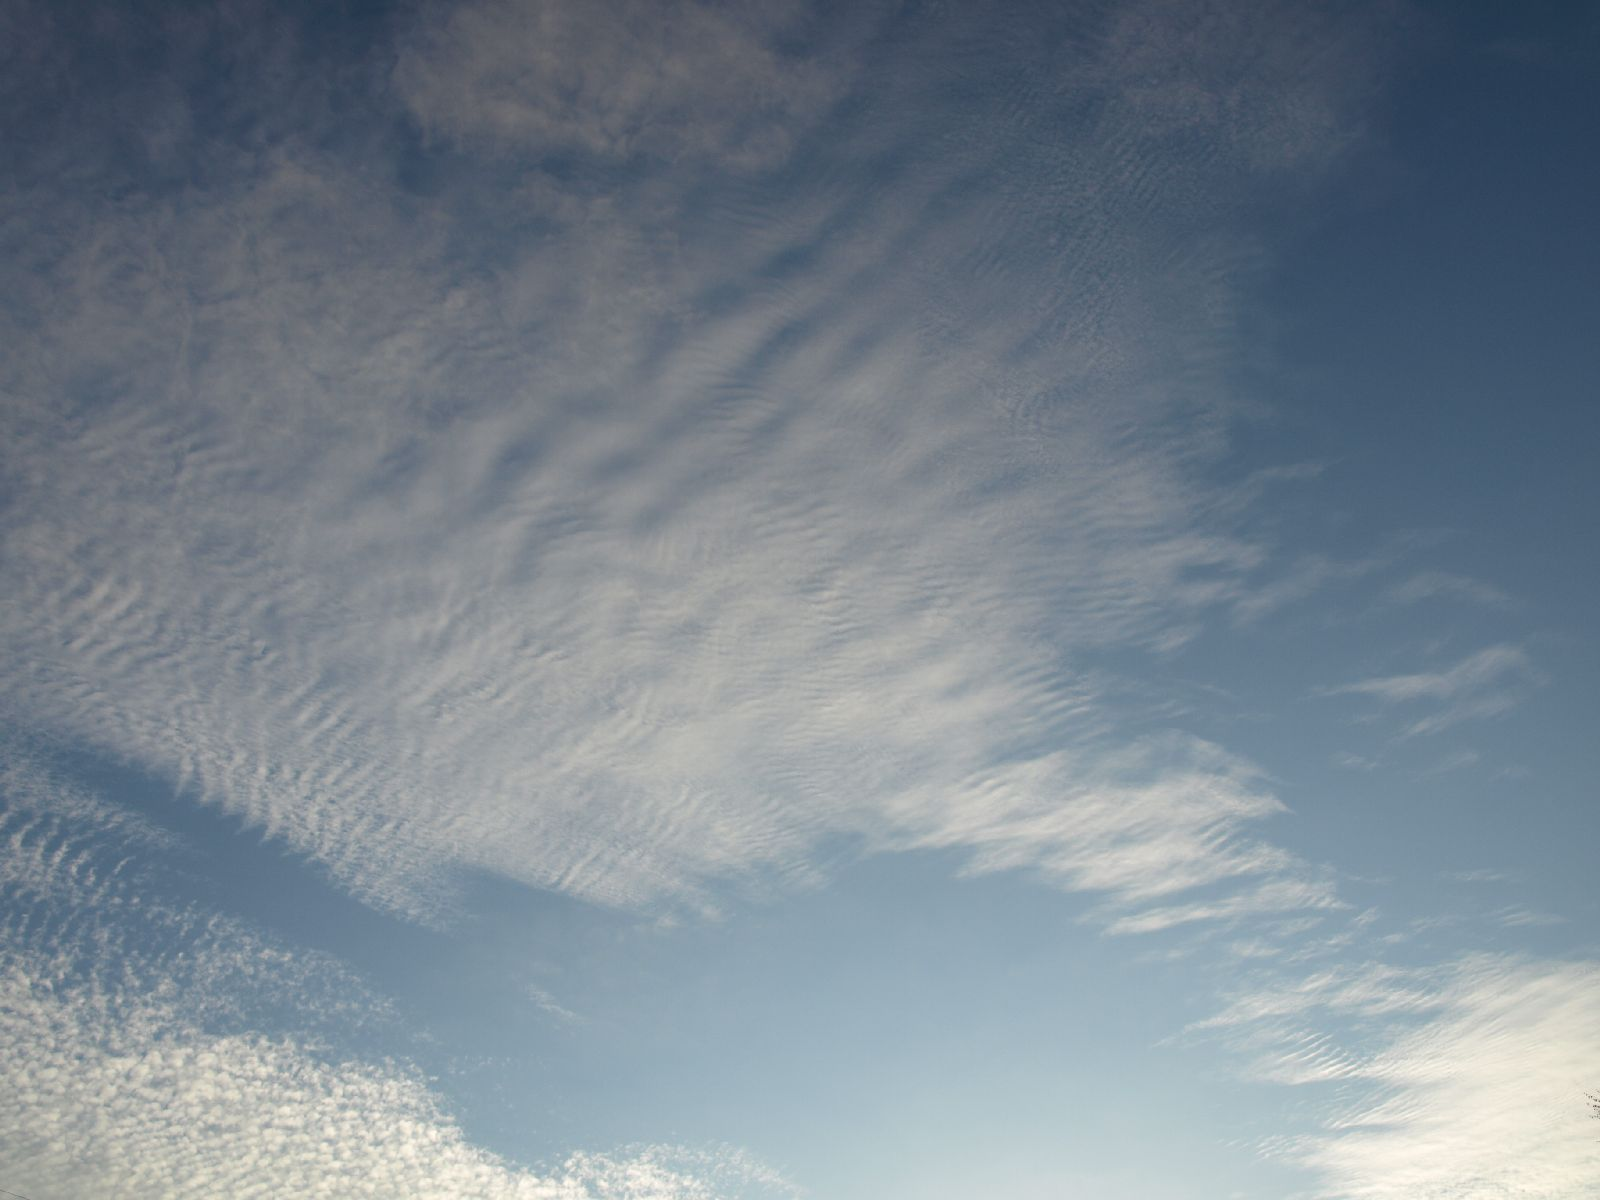 Sky_Clouds_Photo_Texture_A_P8214563